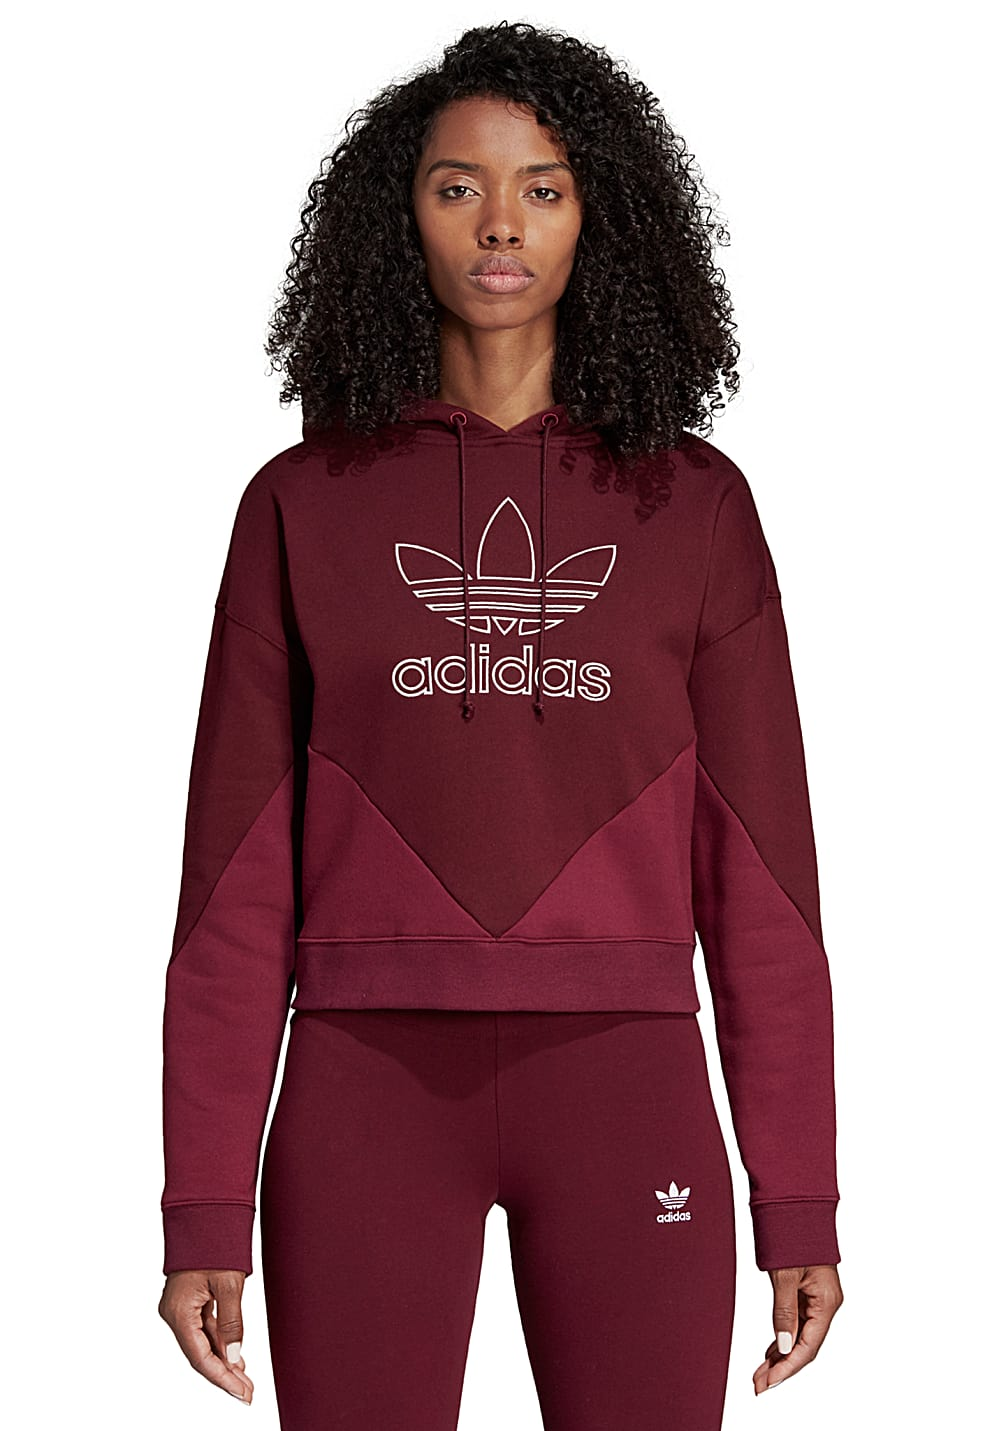 ADIDAS ORIGINALS Colorado - Sweat à capuche pour Femme - Rouge